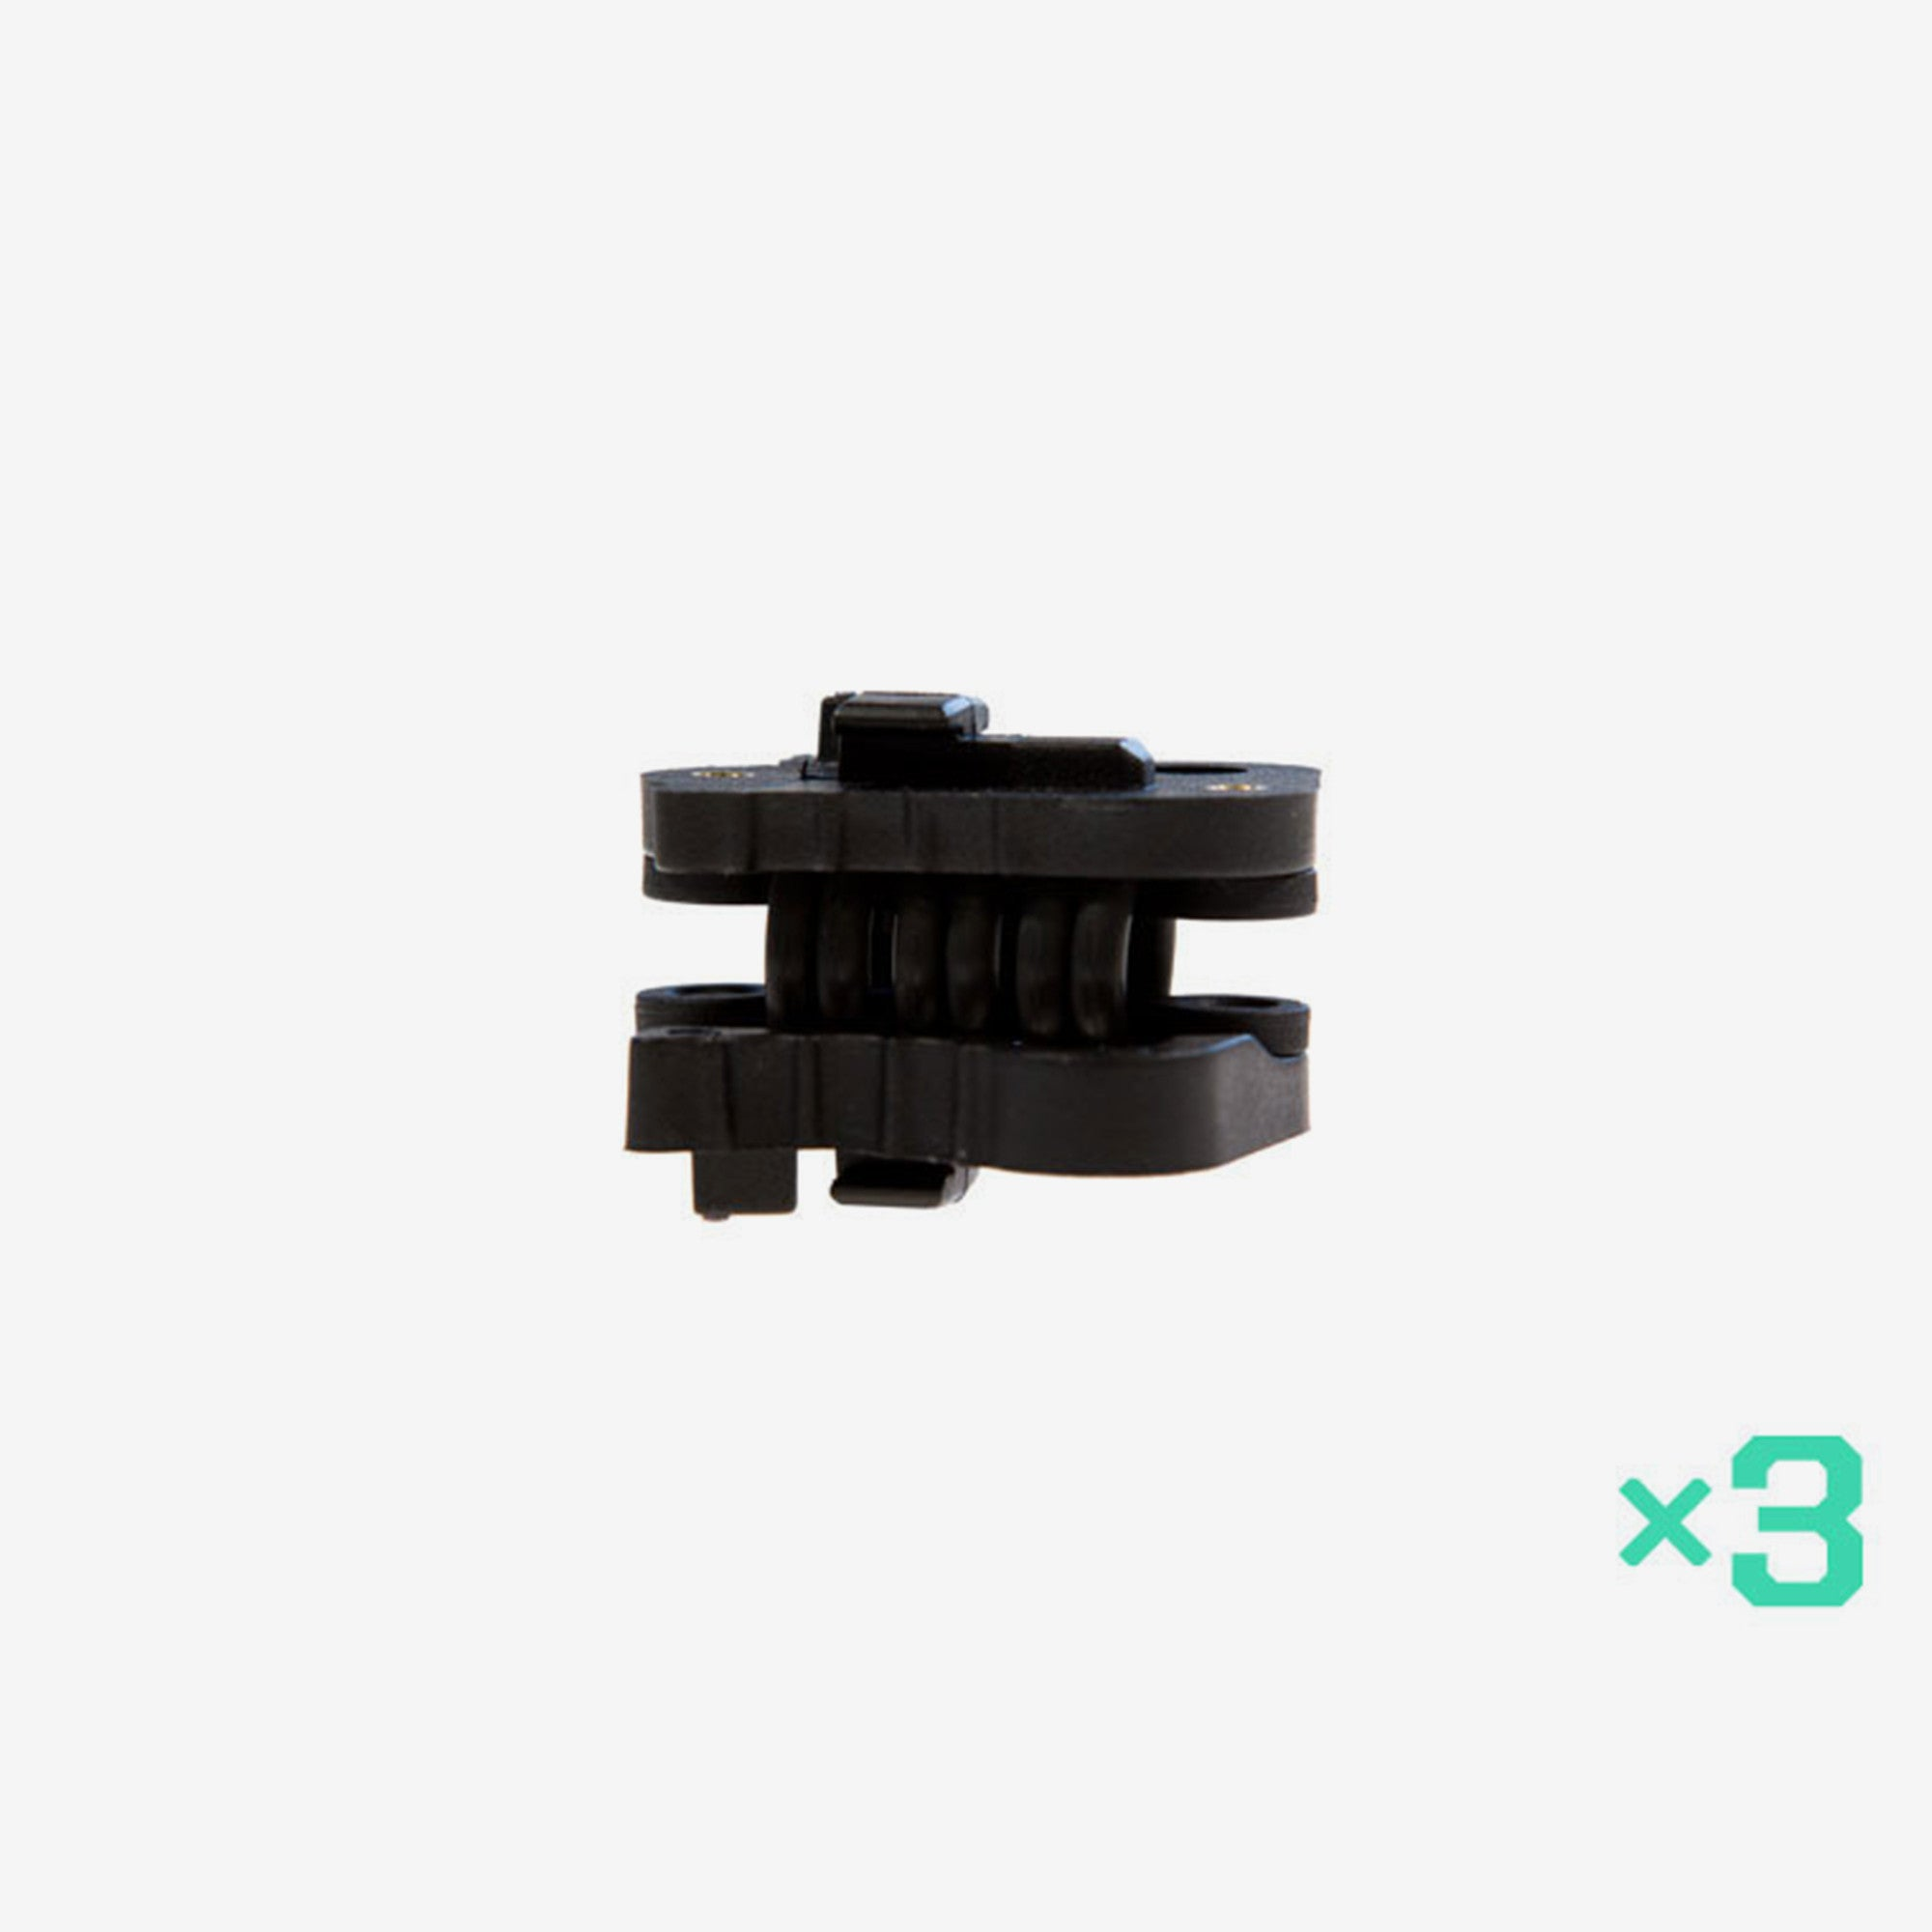 ALTA Vibration Isolator Cartridges - Black